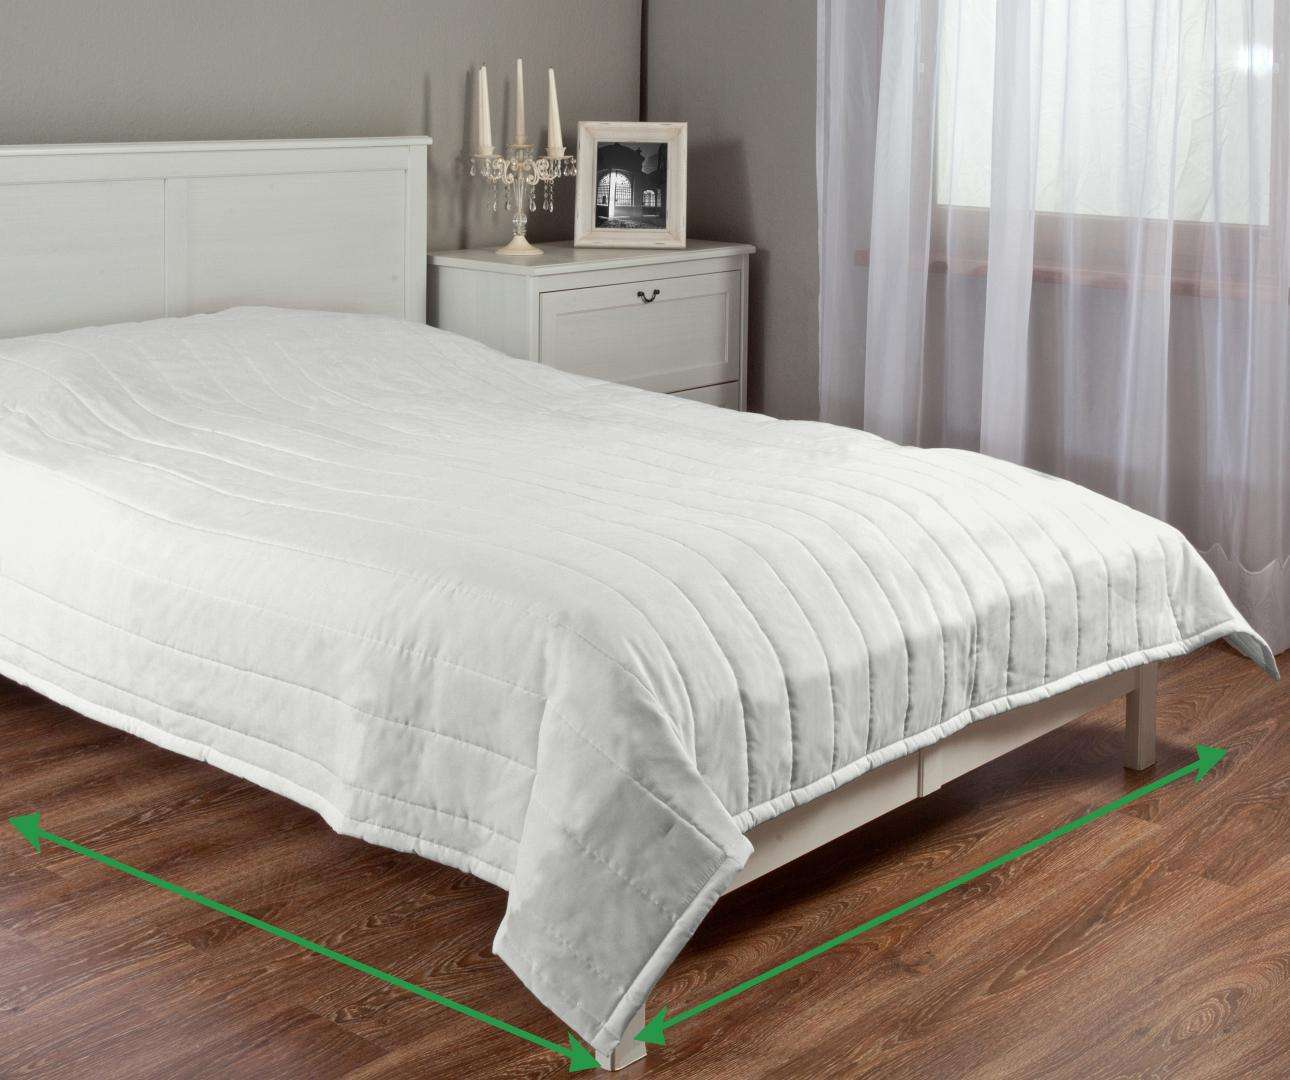 Quilted throw (vertical quilt pattern) in collection Milano, fabric: 150-33